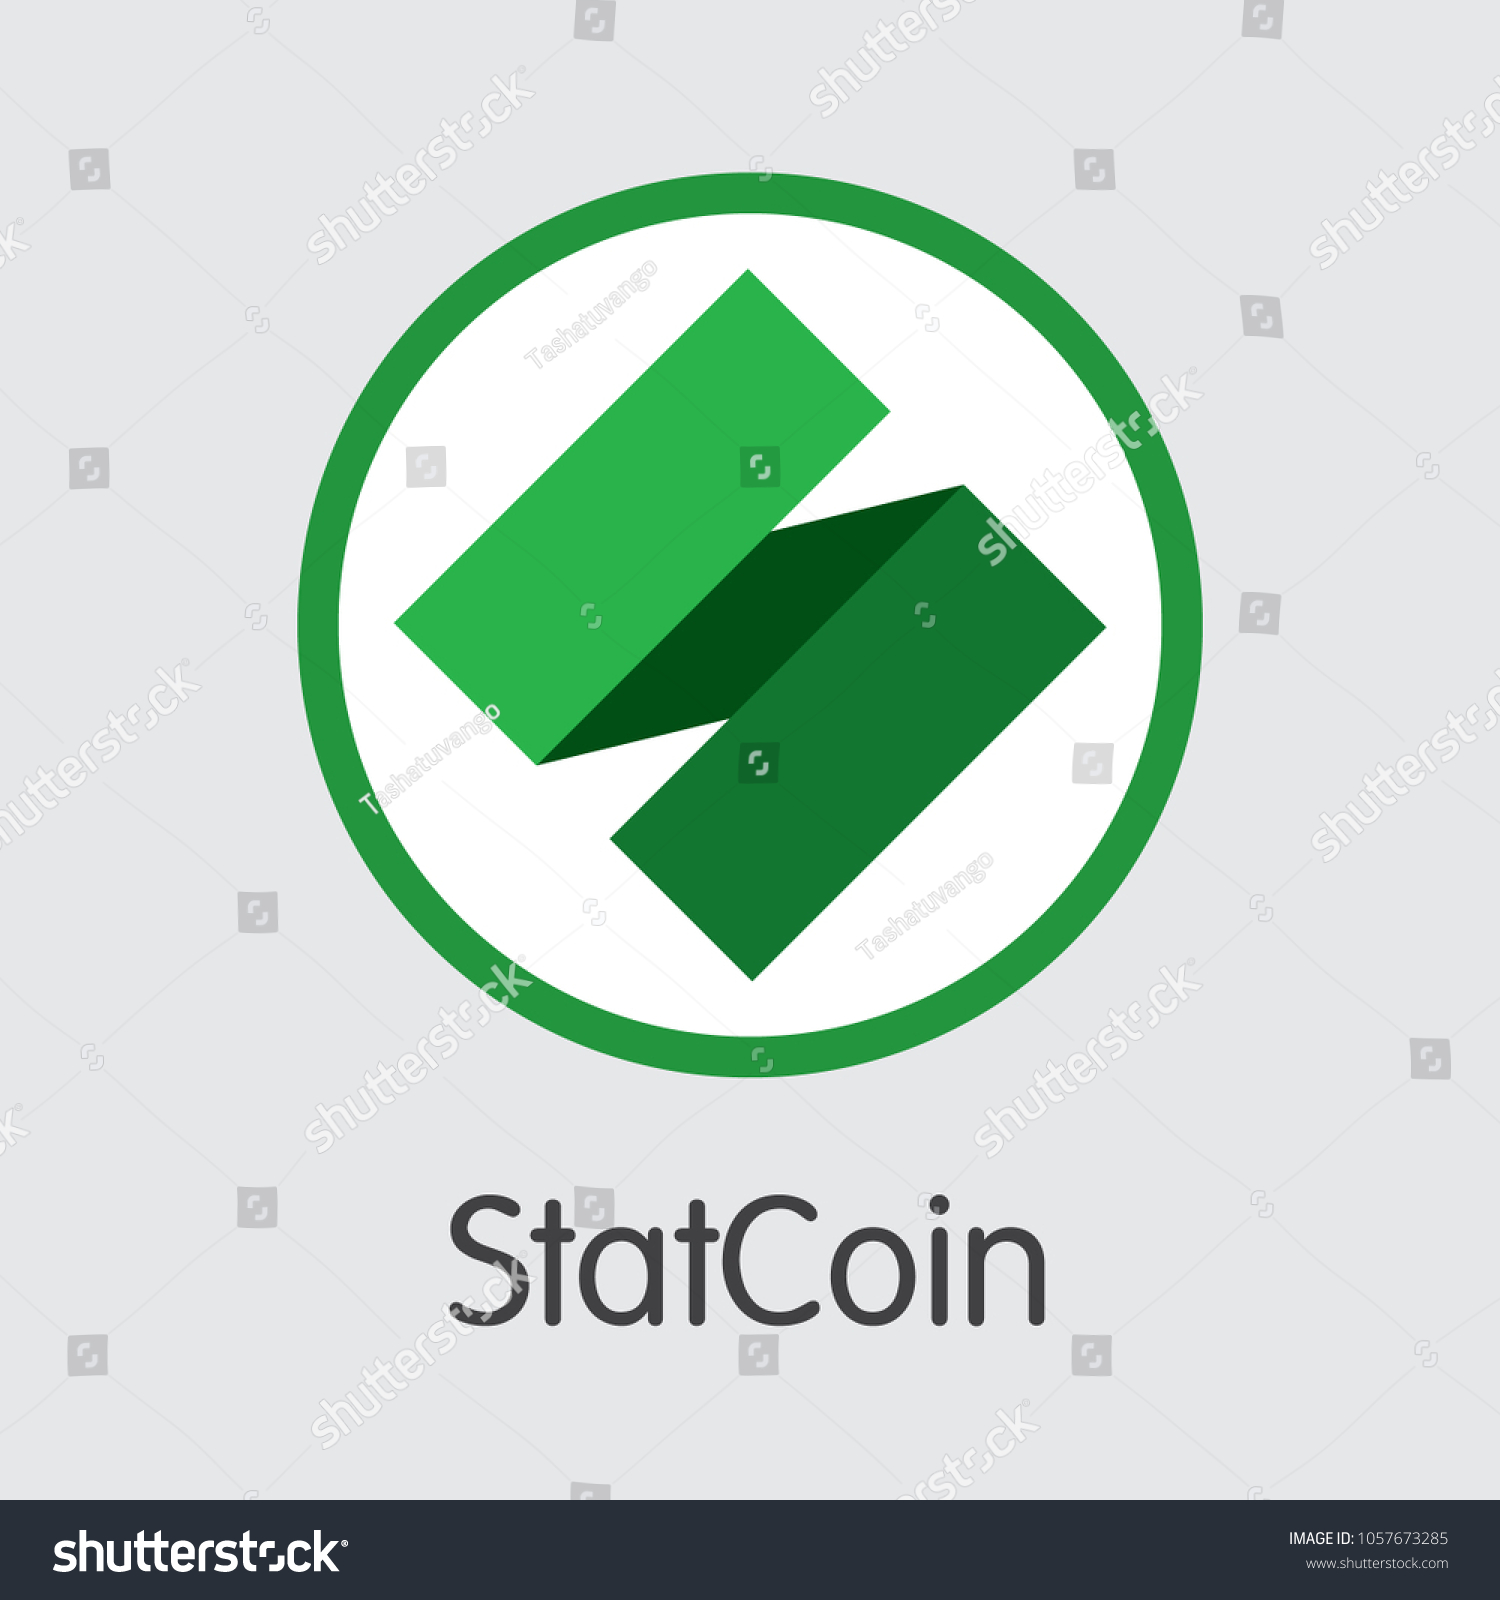 Statcoin Cryptocurrency Concept Colored Vector Icon Stock Vector